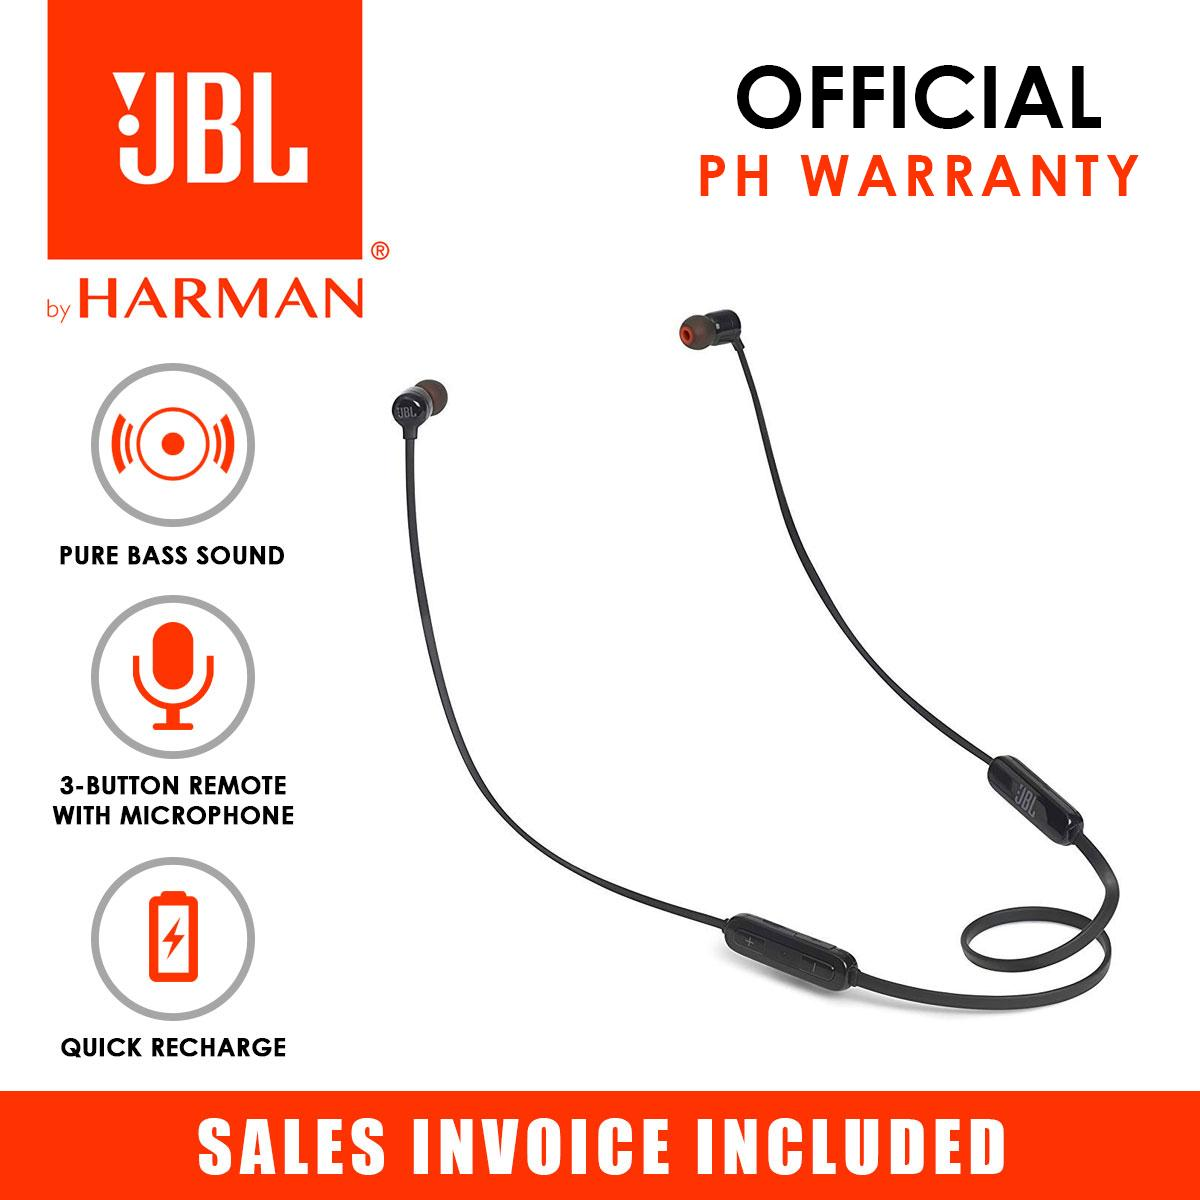 JBL T110BT Pure Bass Wireless Bluetooth In-Ear Headphones with Mic (Black)